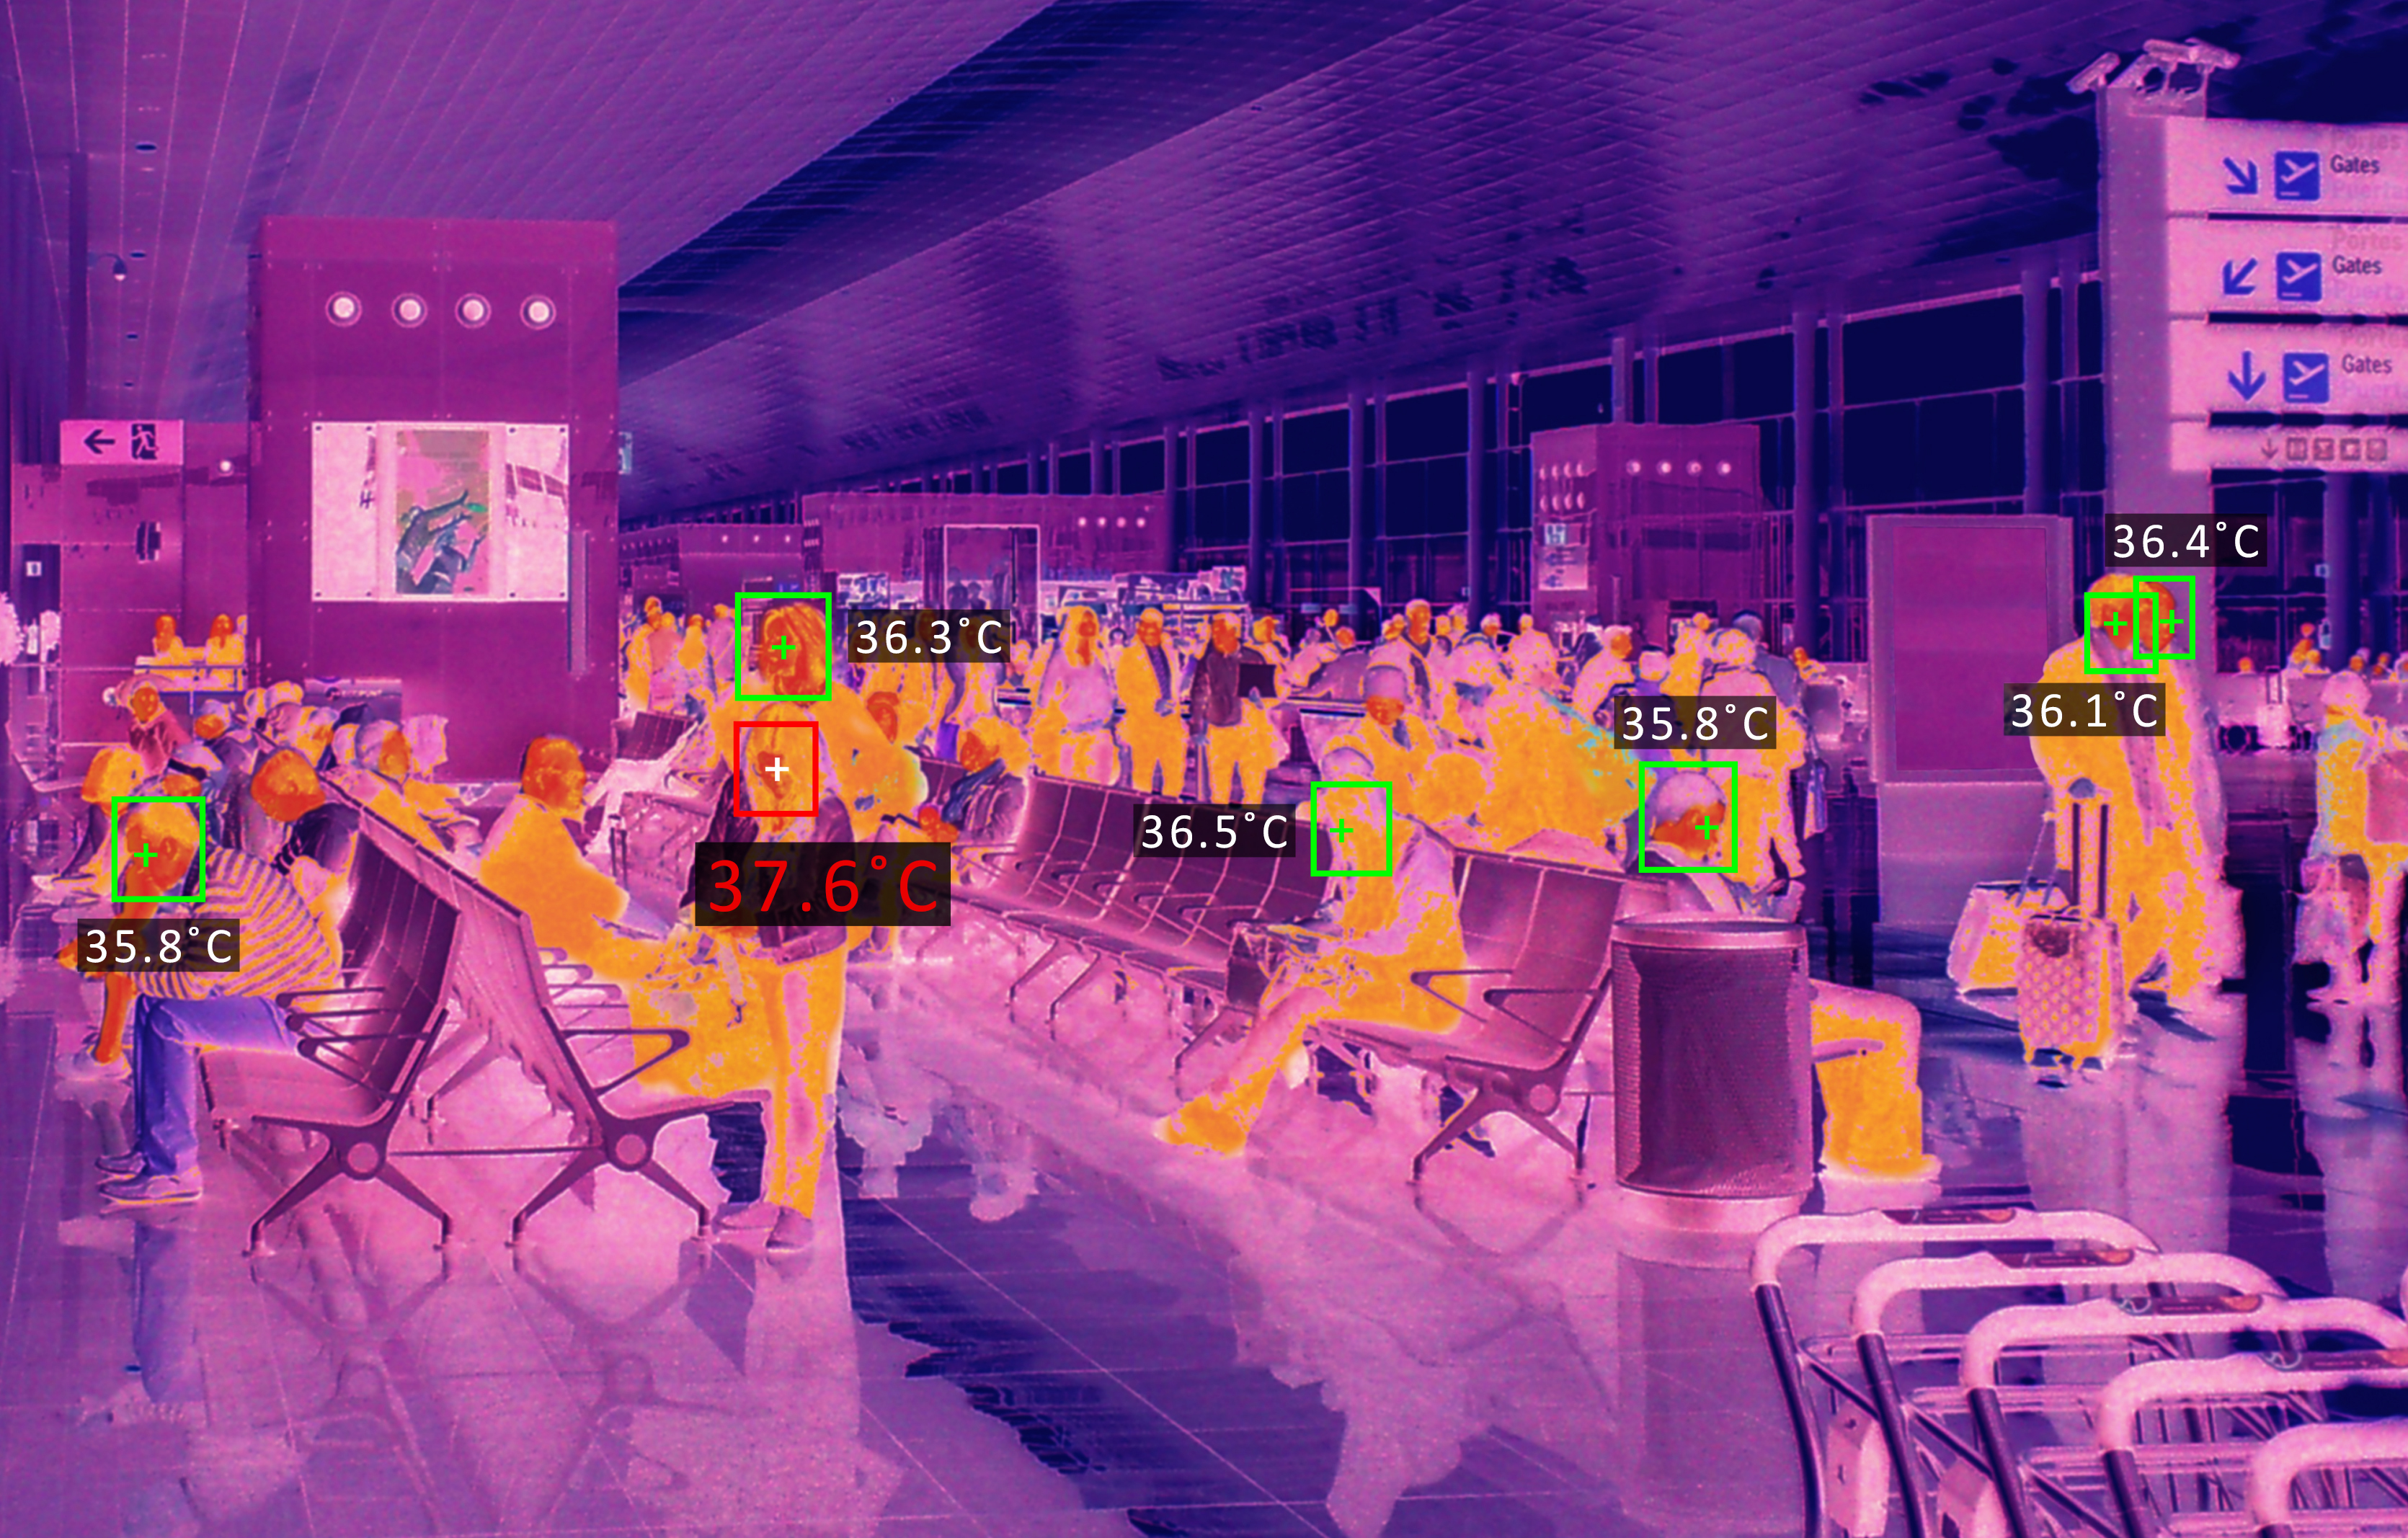 How thermal imaging is improving building energy management practices